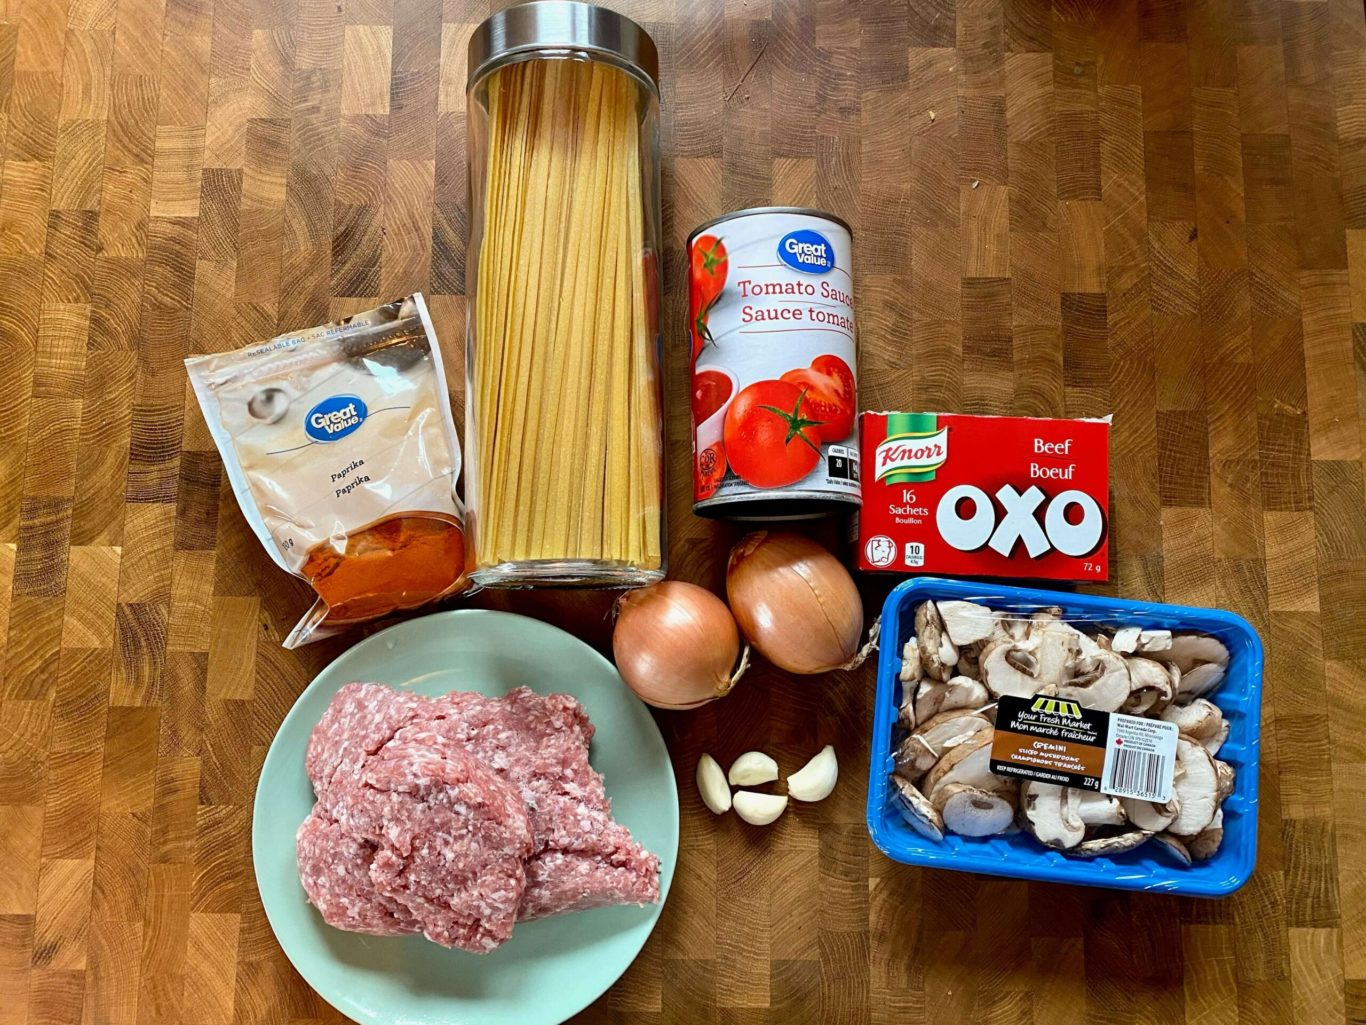 Top view of ground pork on a plate, a bag of paprika, a jar with spaghetti, a can of tomato sauce, two onions, some garlic cloves, a box of beef bouillon, and a package of mushrooms.